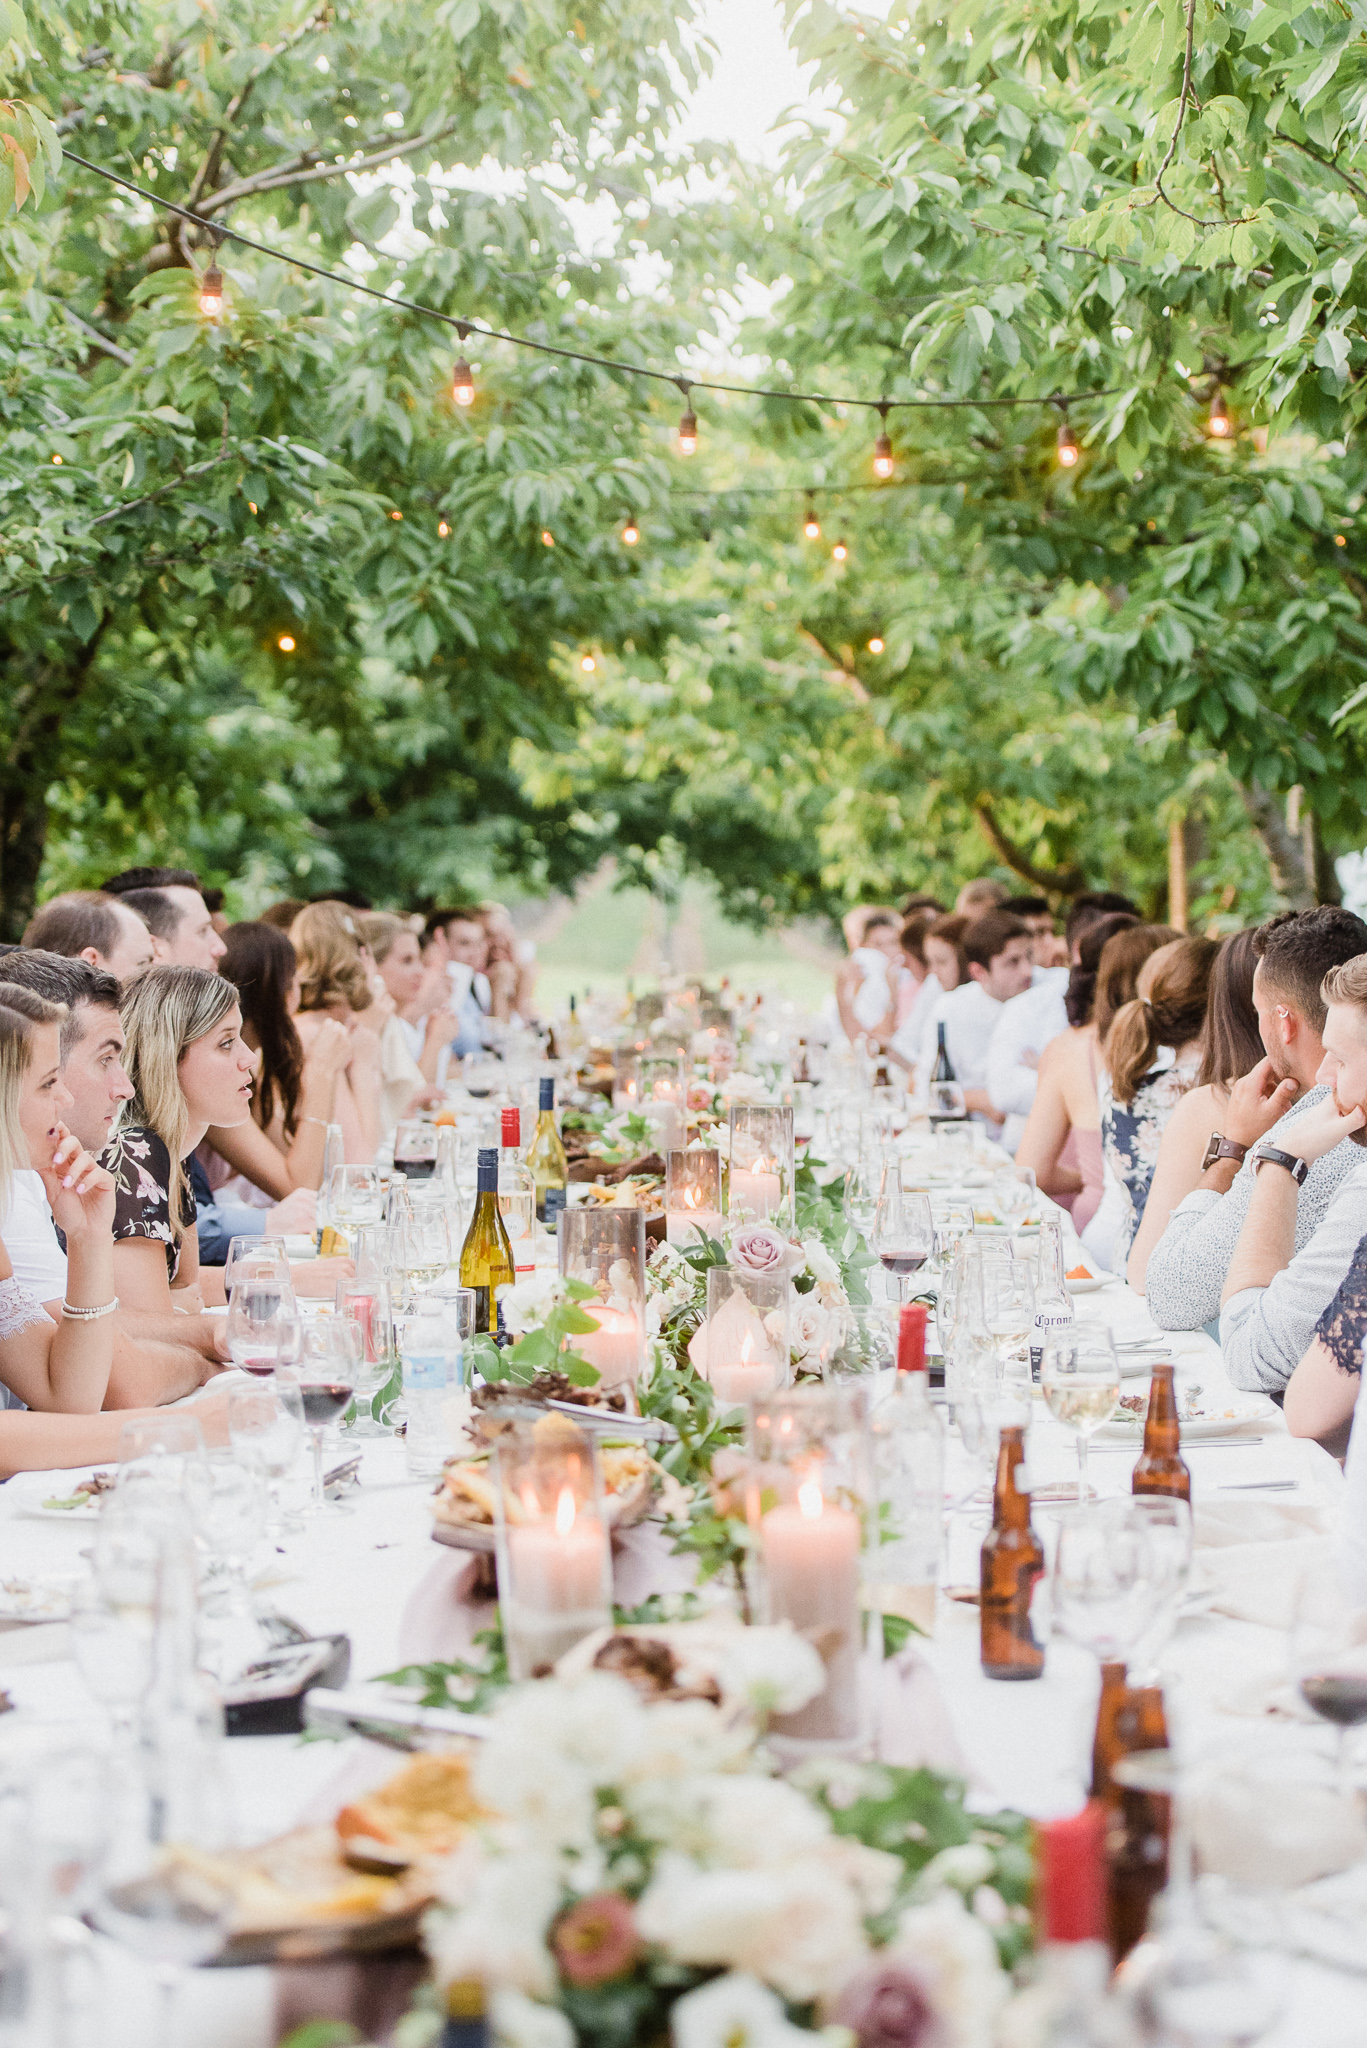 Harvest table wedding setup at Kurtz Orchards by Jenn Kavanagh Photography